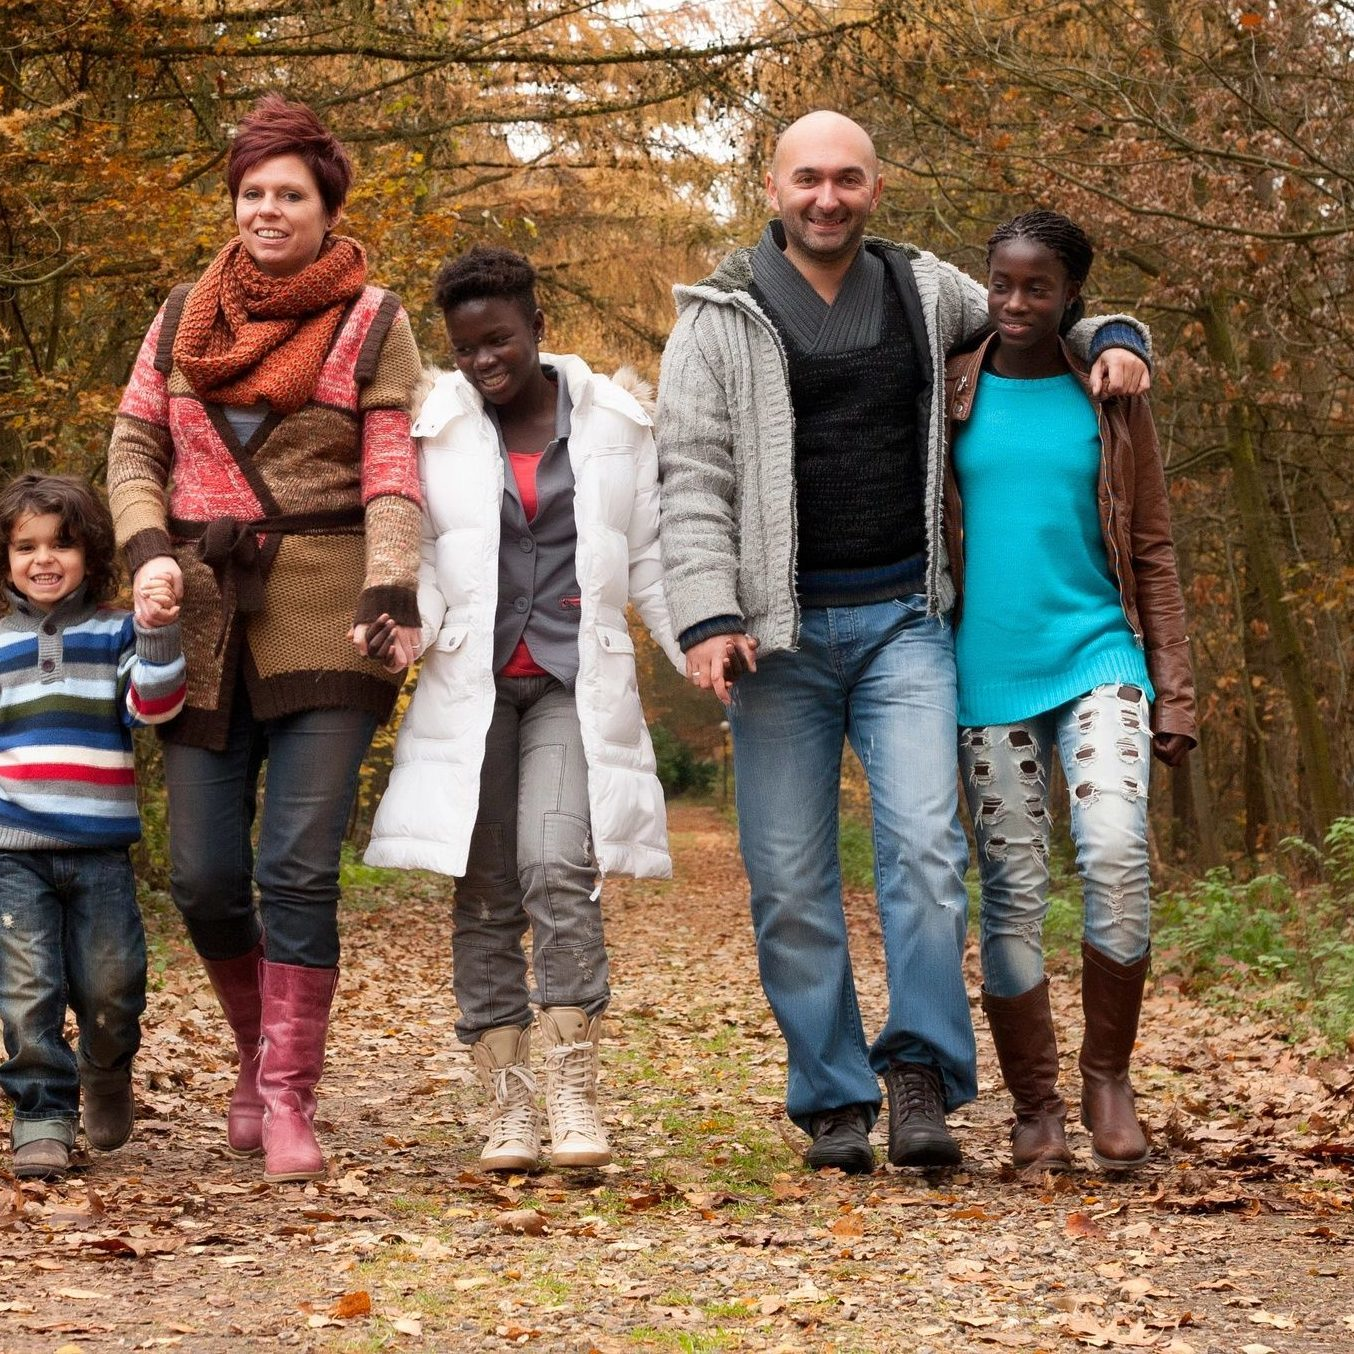 group of people walking on a wooded path